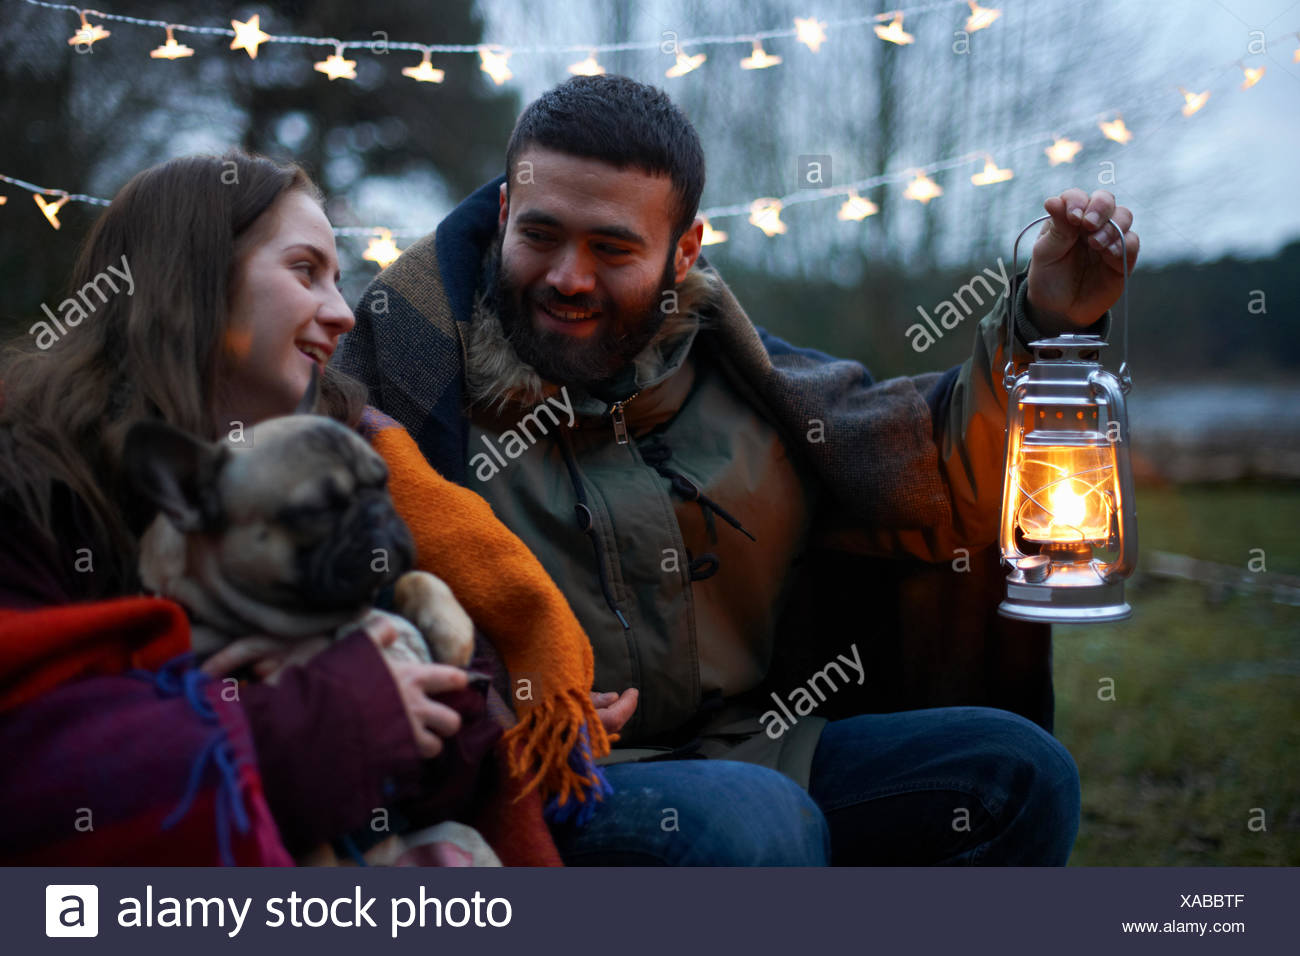 Young camping couple with dog wrapped in blanket - Stock Image